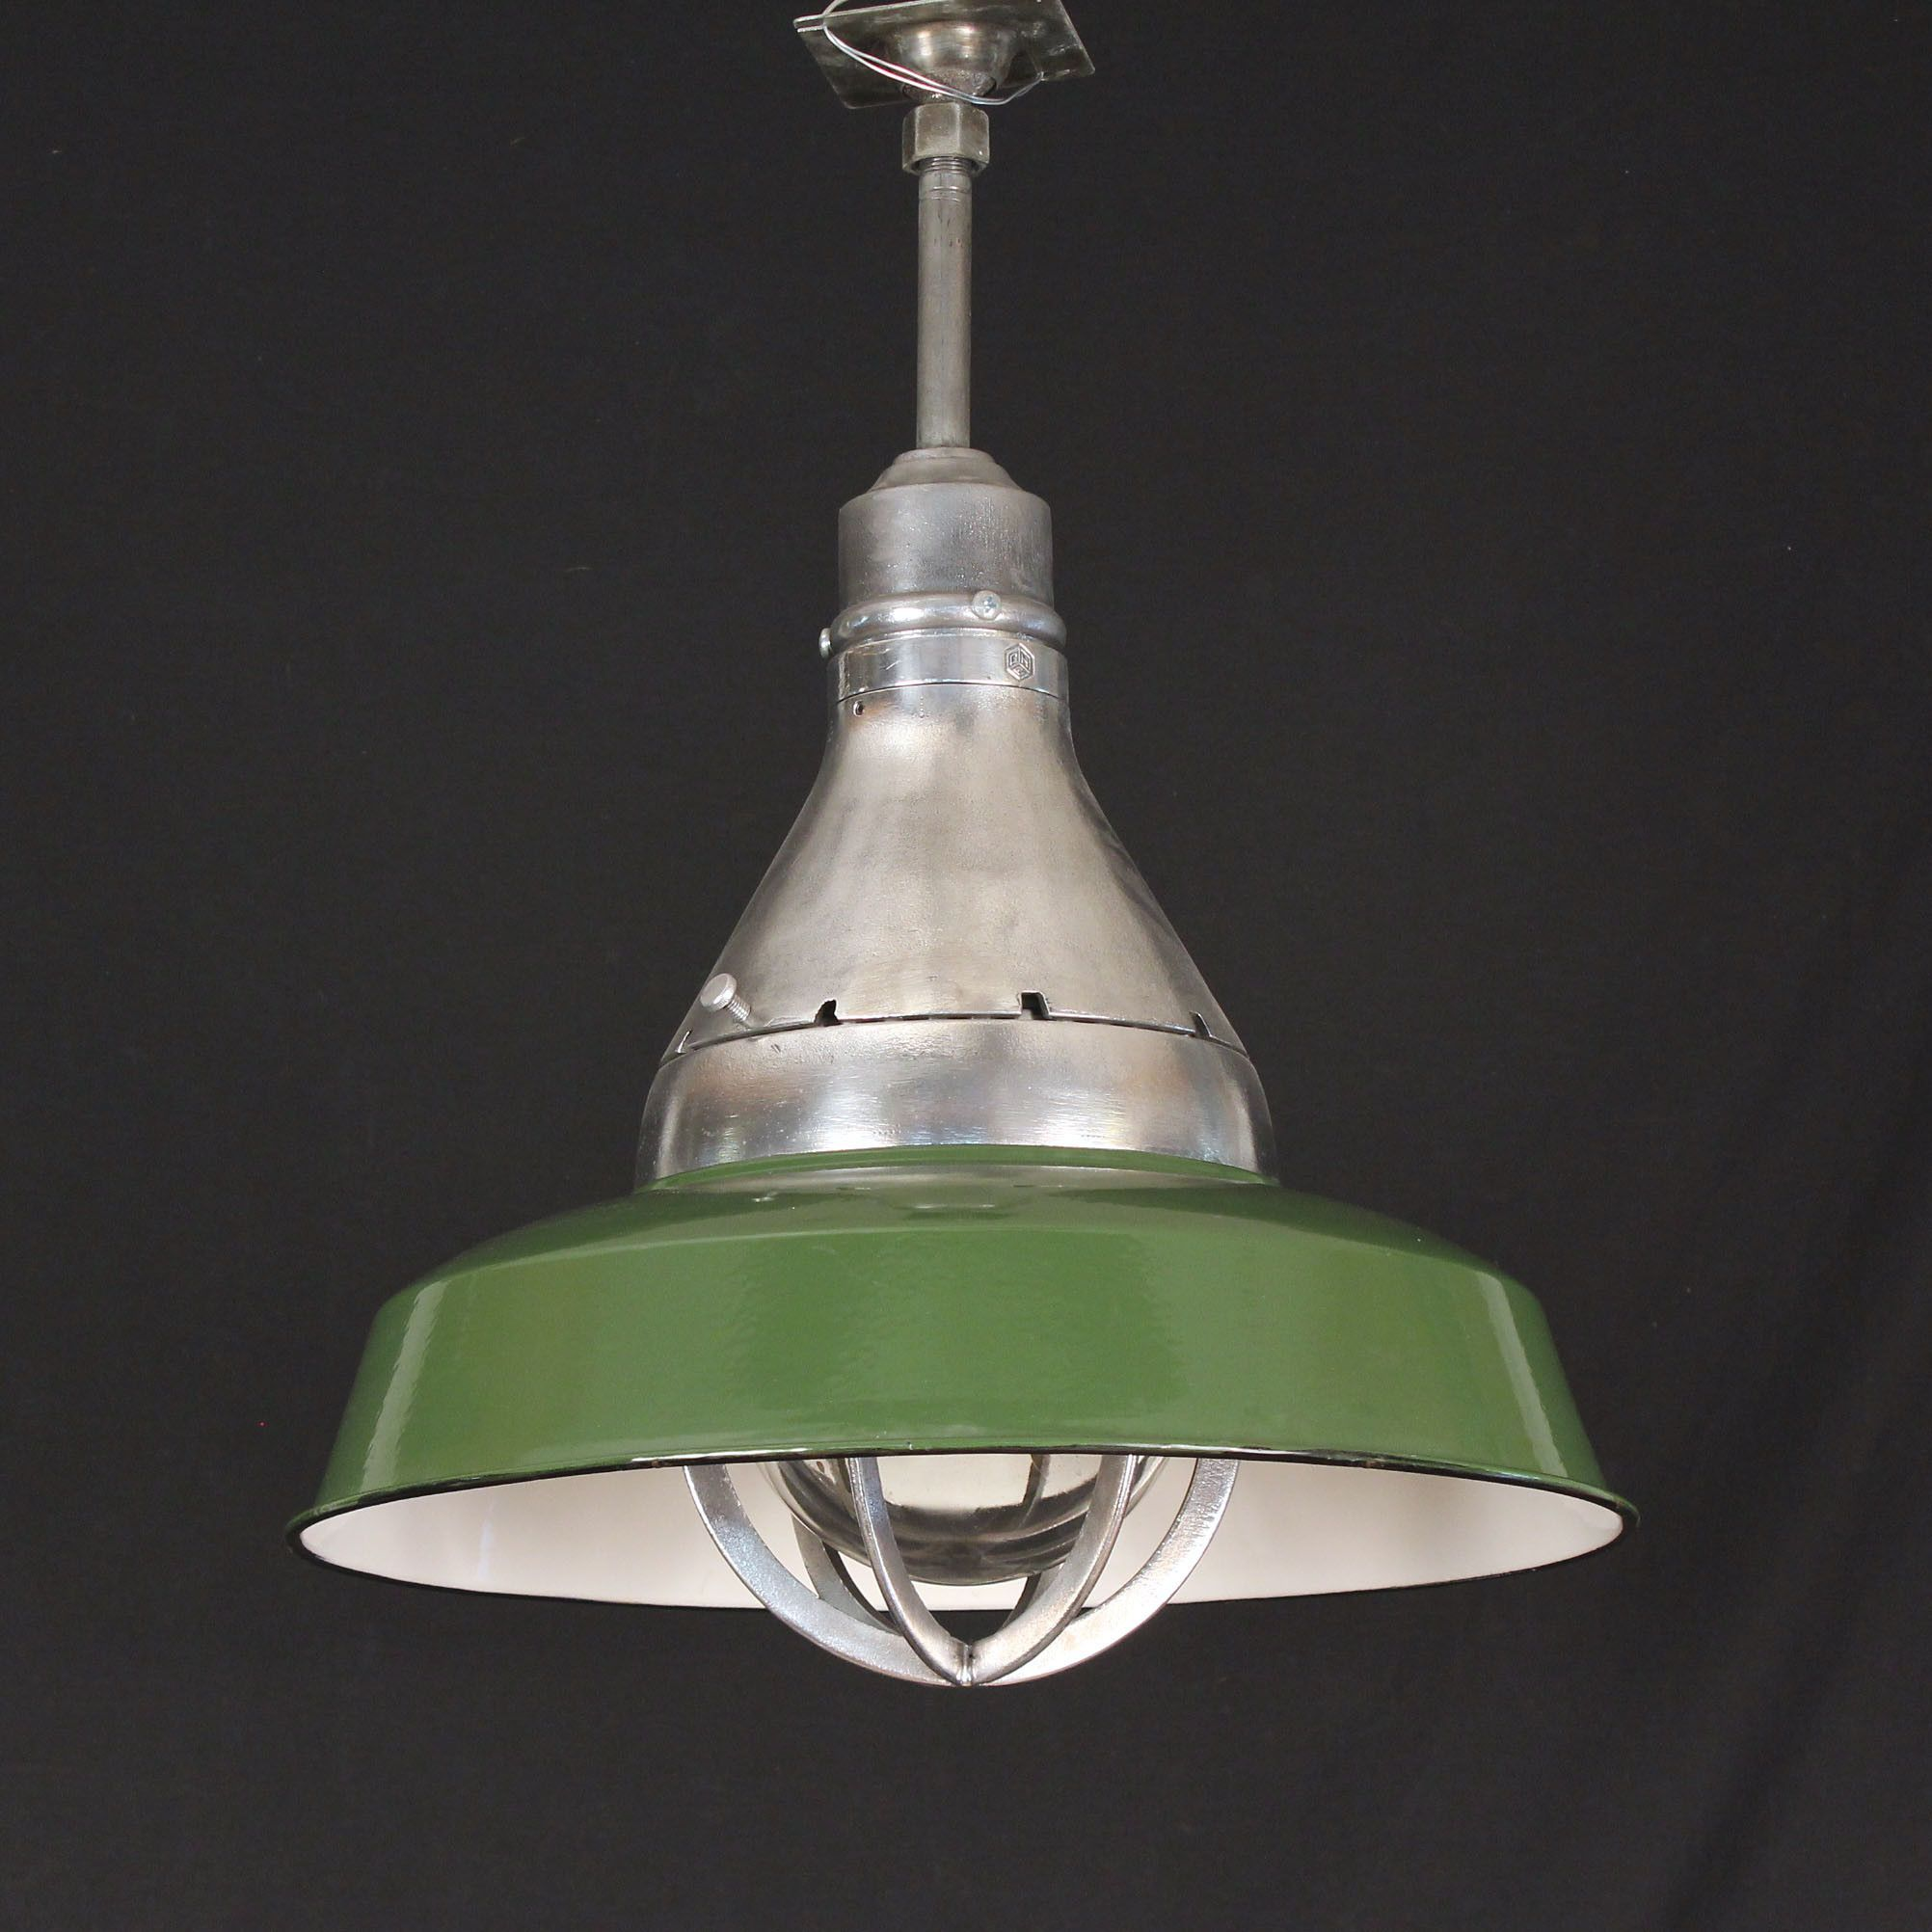 Large crouse hinds vapor proof light with green enamel shade large crouse hinds vapor proof light with green enamel shade arubaitofo Choice Image